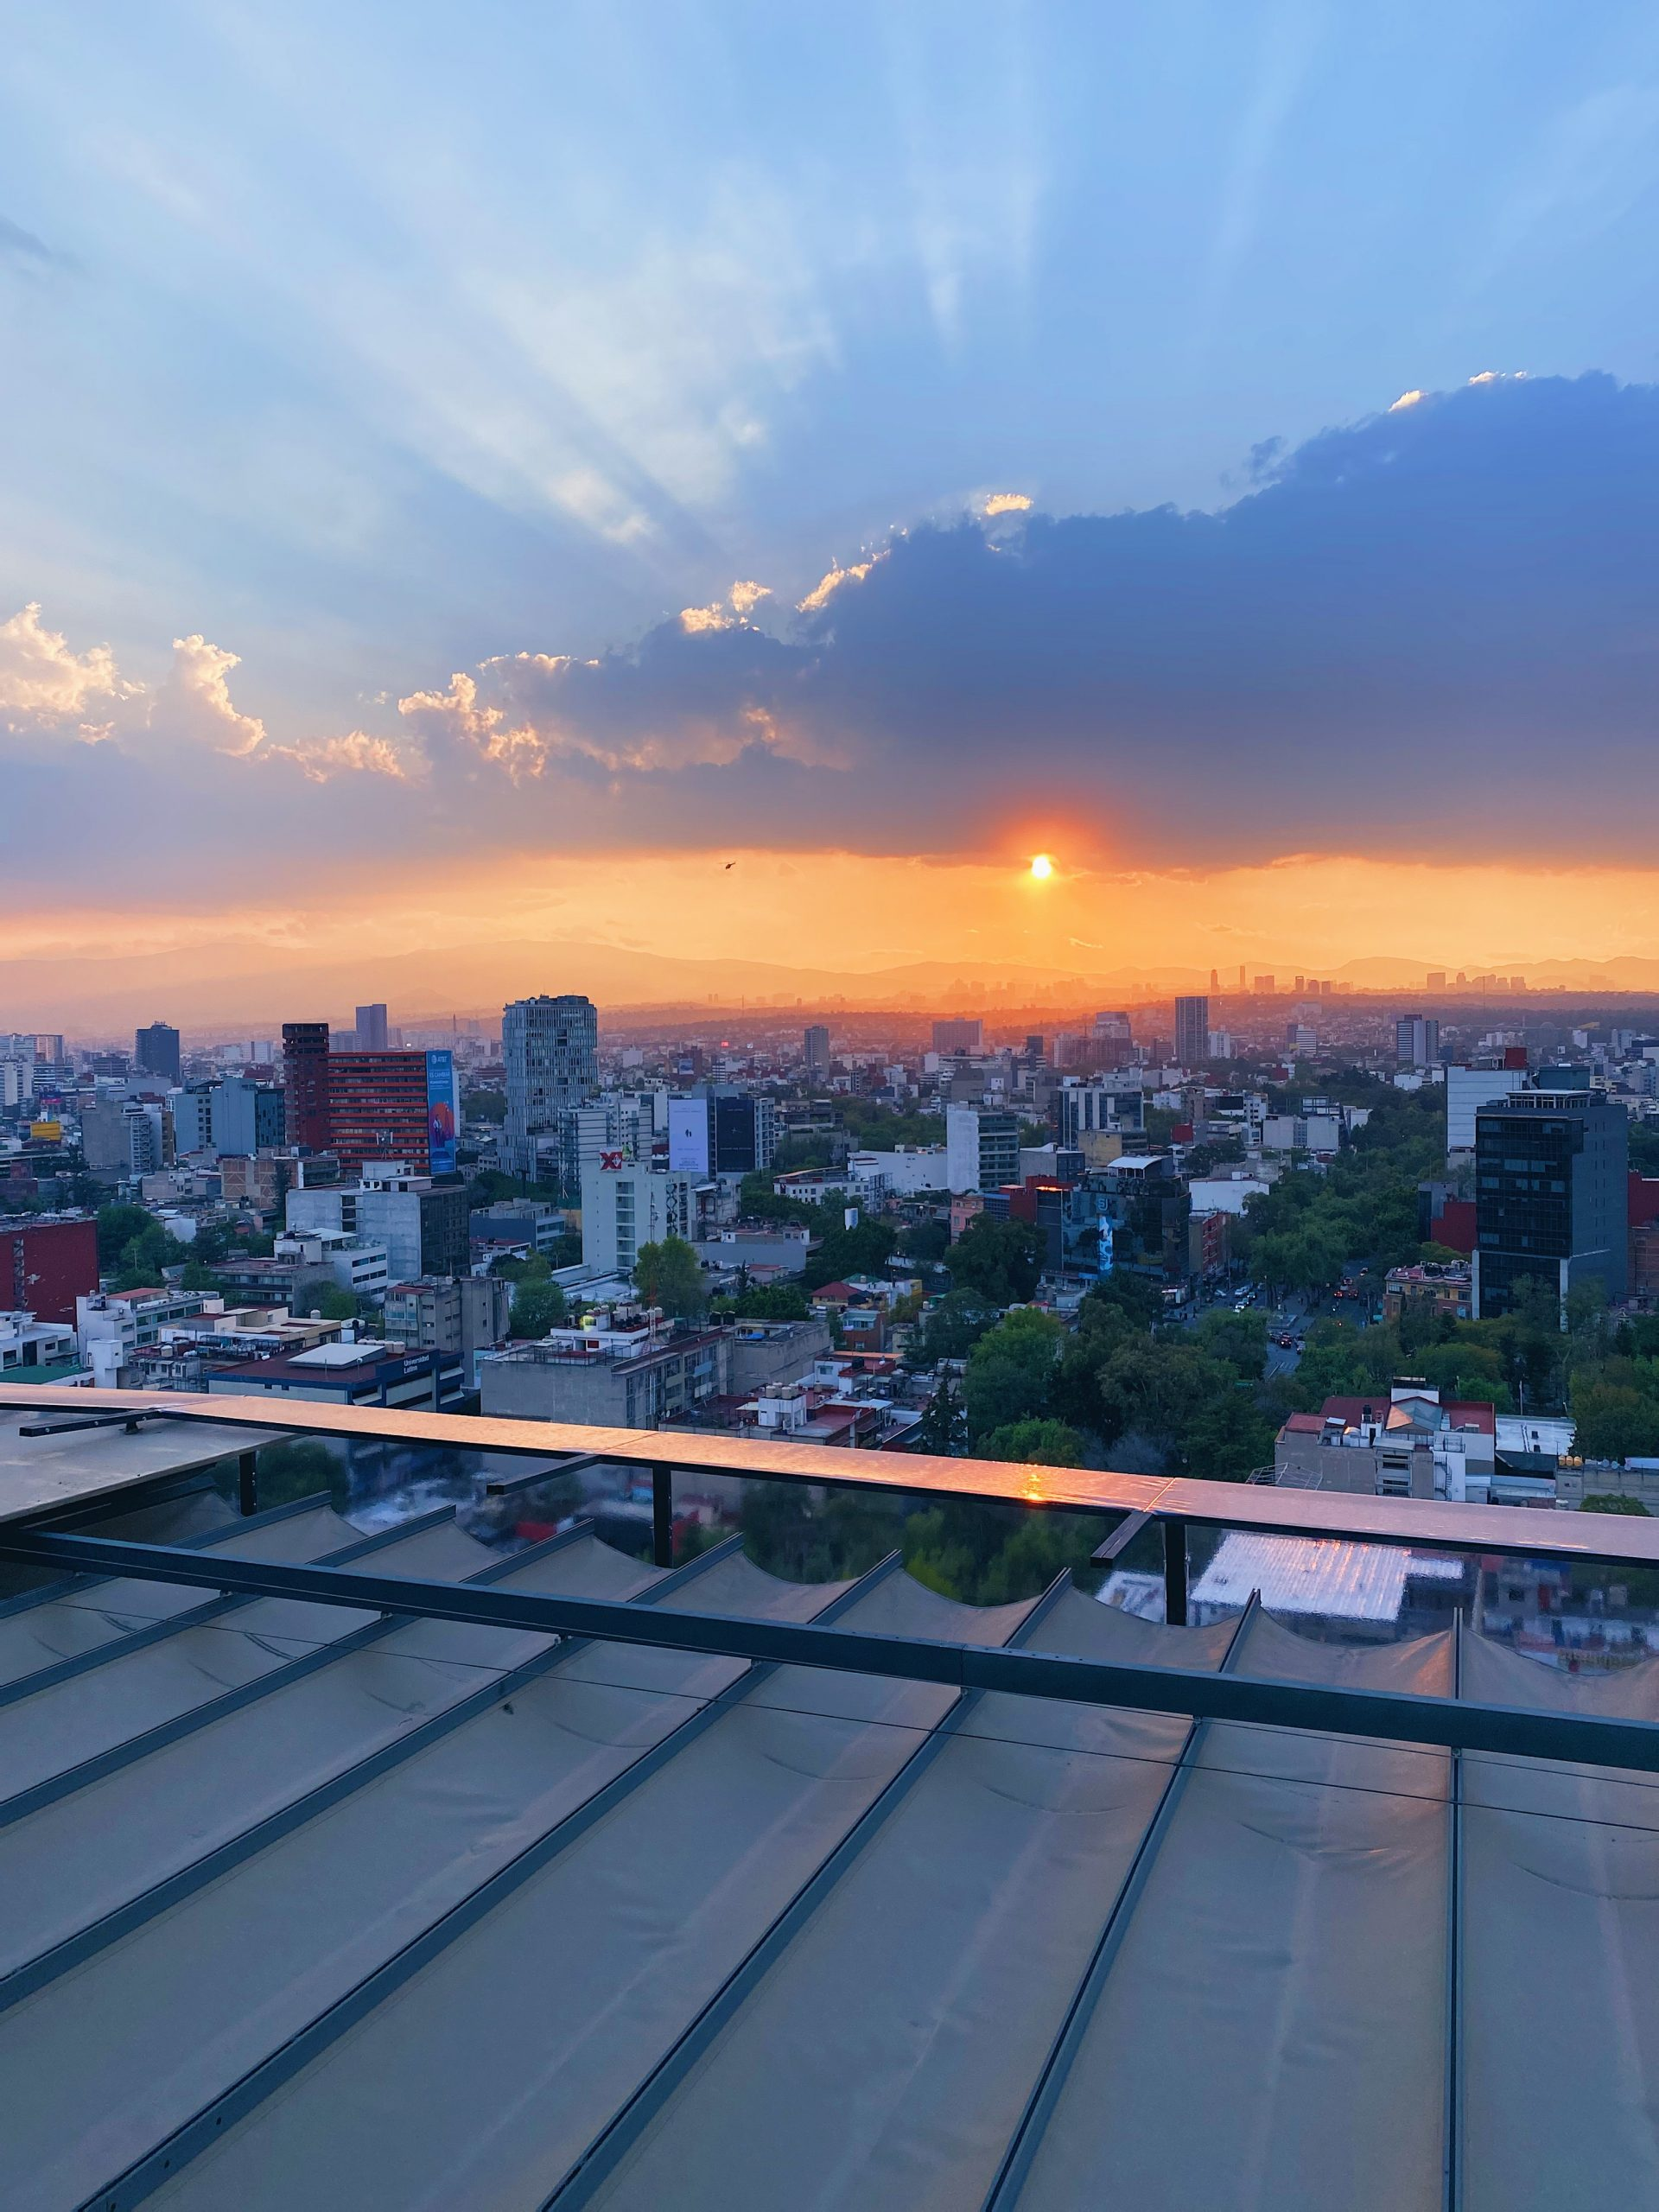 wu-haus-mexico-city-guide-sunset